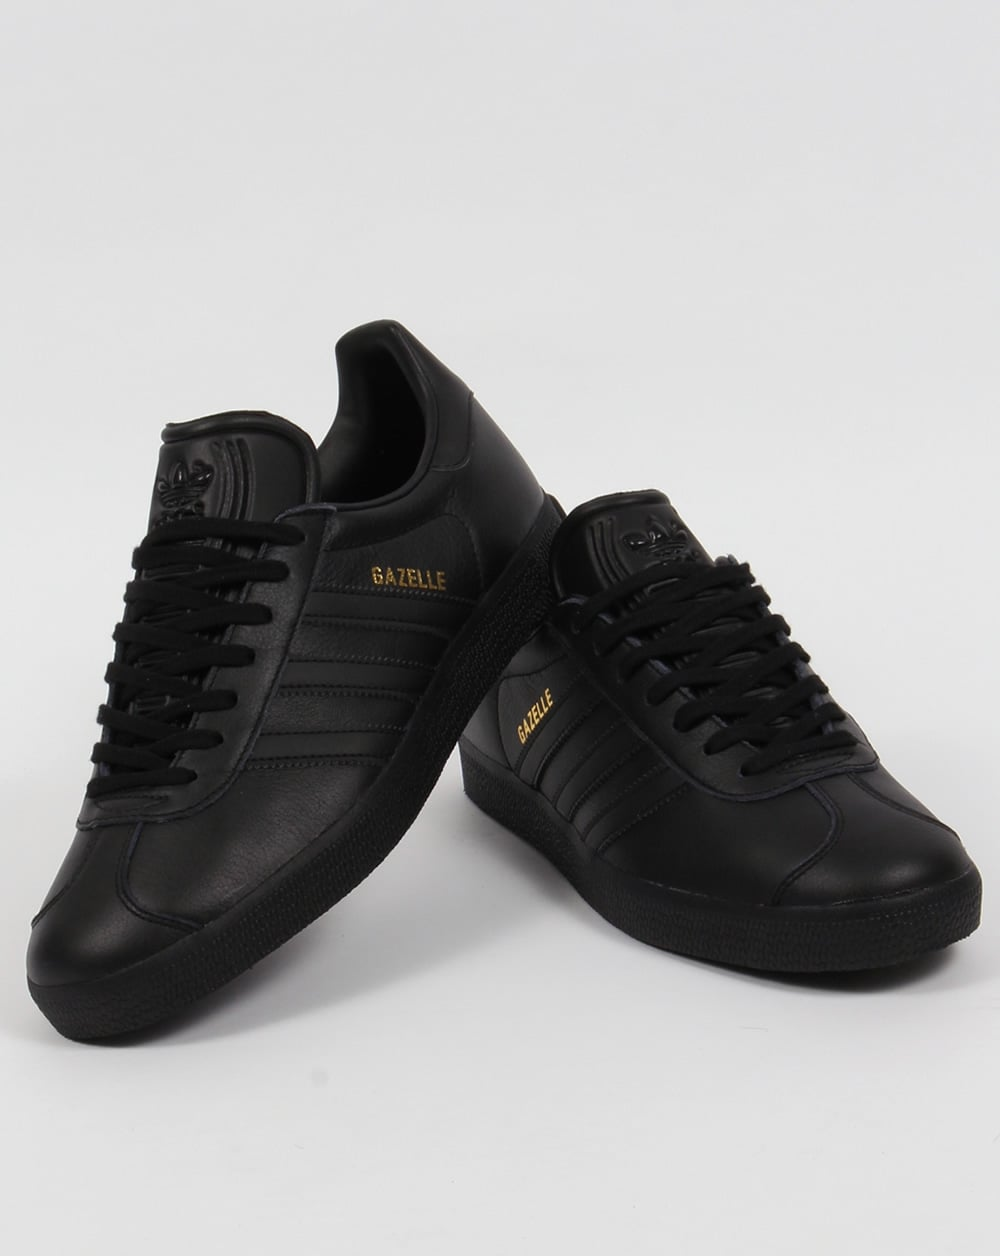 36d16512 Adidas Gazelle Leather, Triple Black, | 80s casual classics